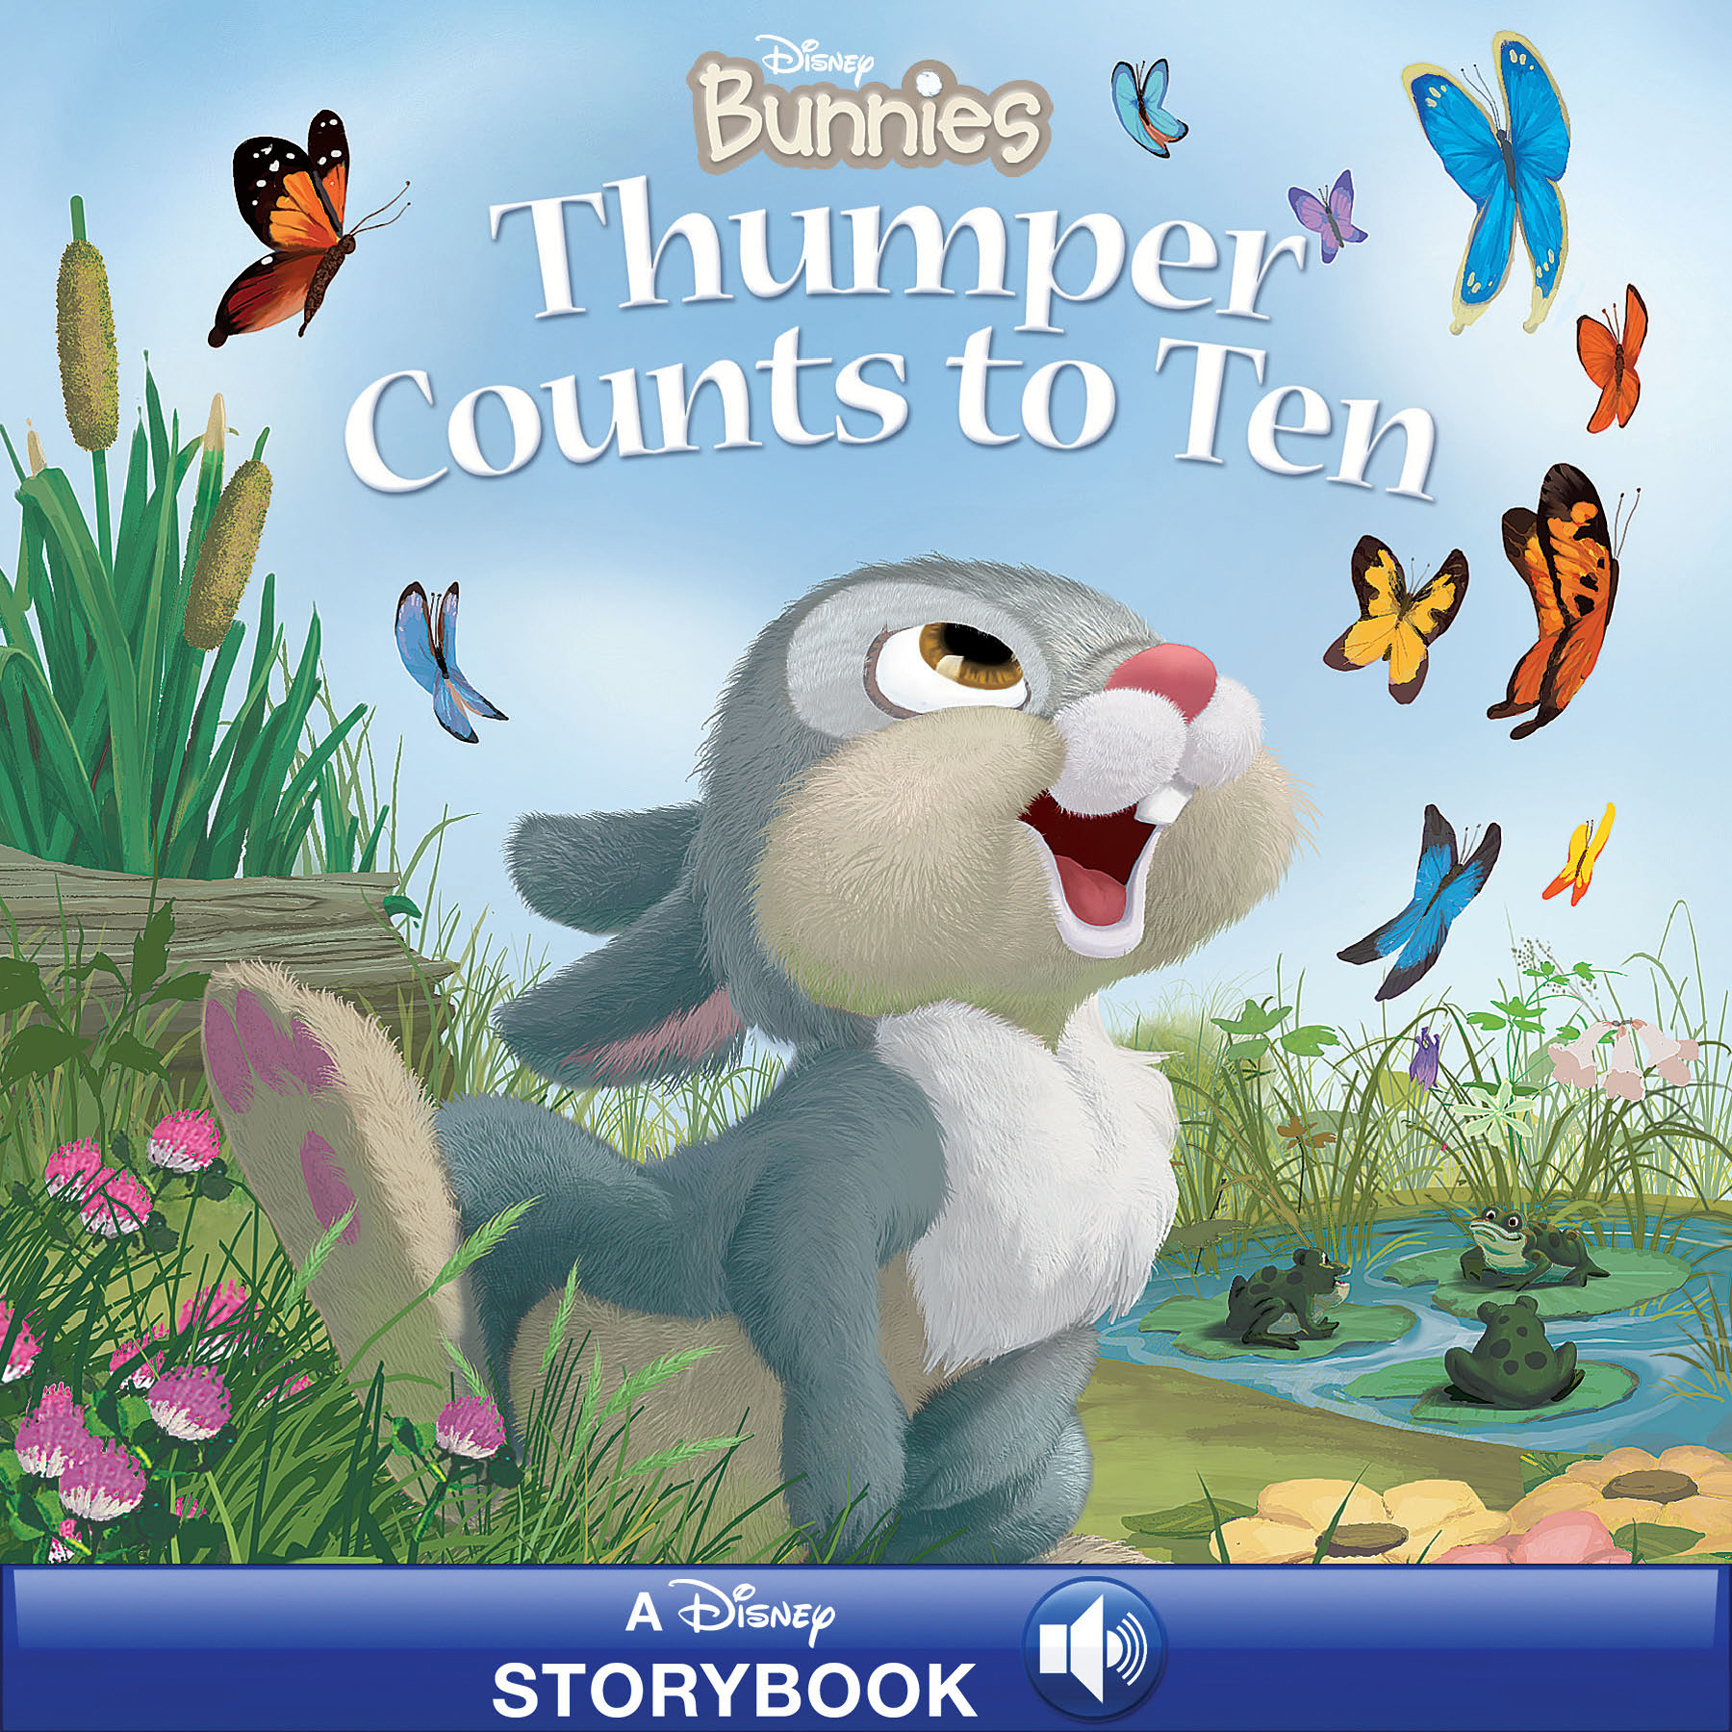 Disney Bunnies: Thumper Counts to Ten Read-Along